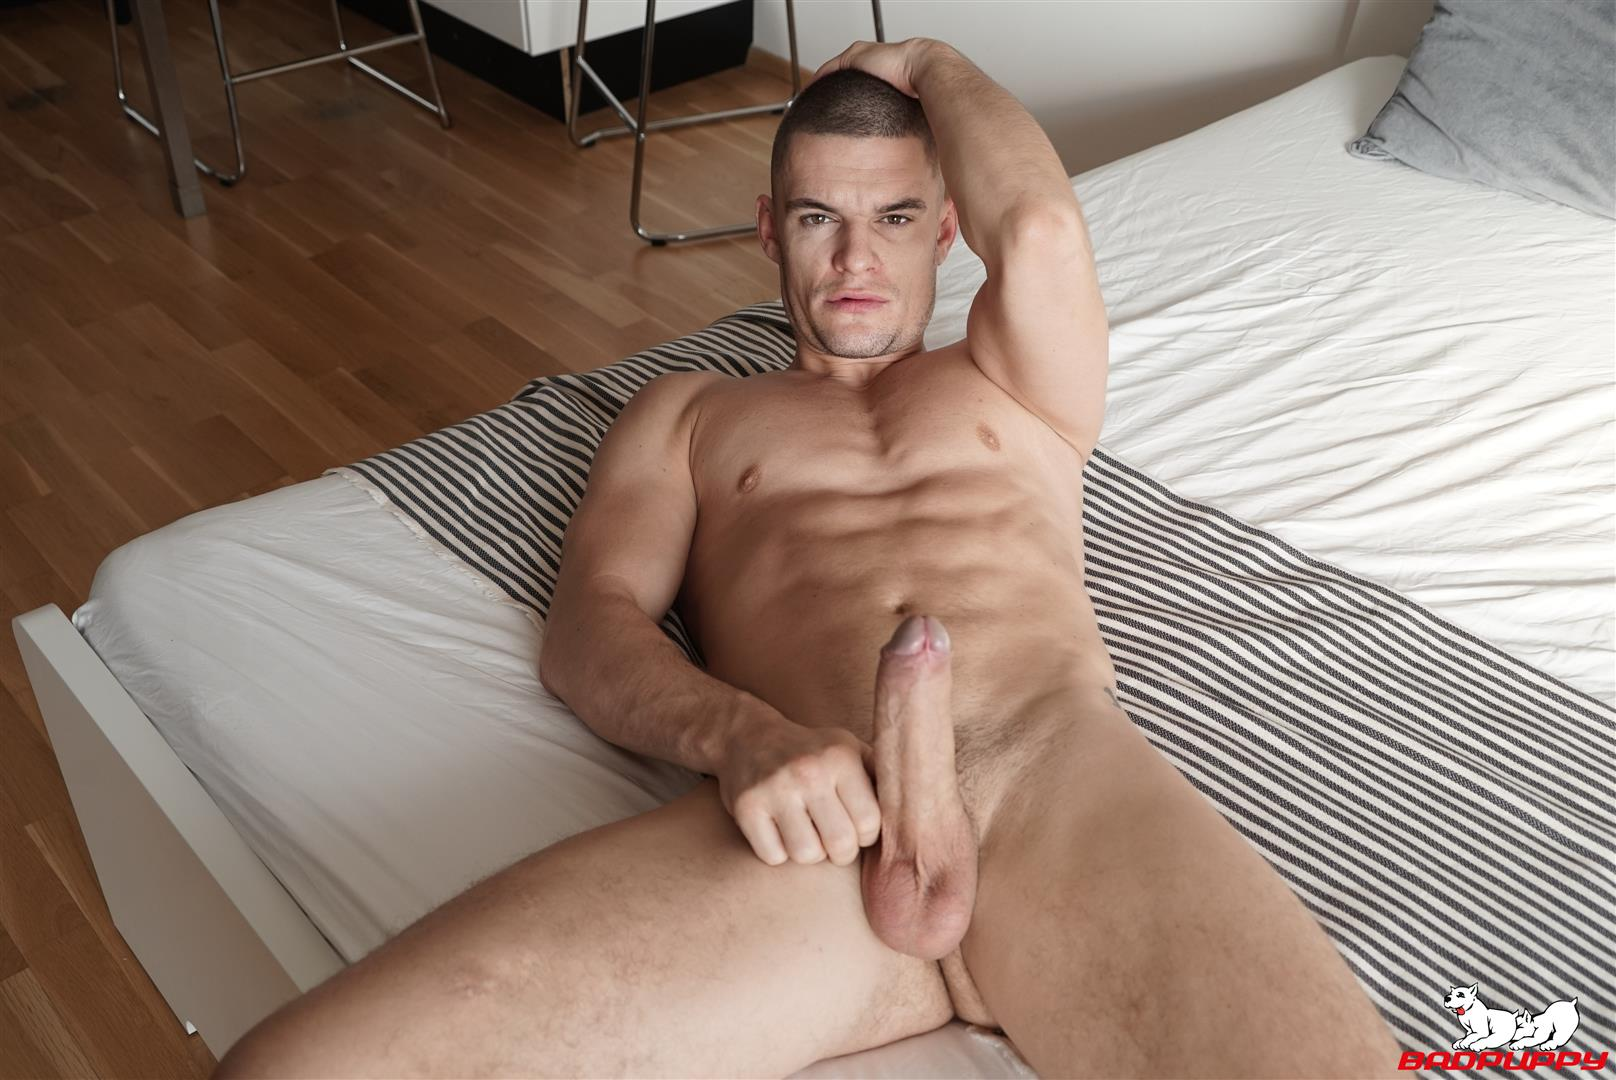 Badpuppy-Max-Dior-Big-Uncut-Cock-Jerkoff-Video-10 Waking Up From A Nap And Jerking Off My Big Uncut Cock